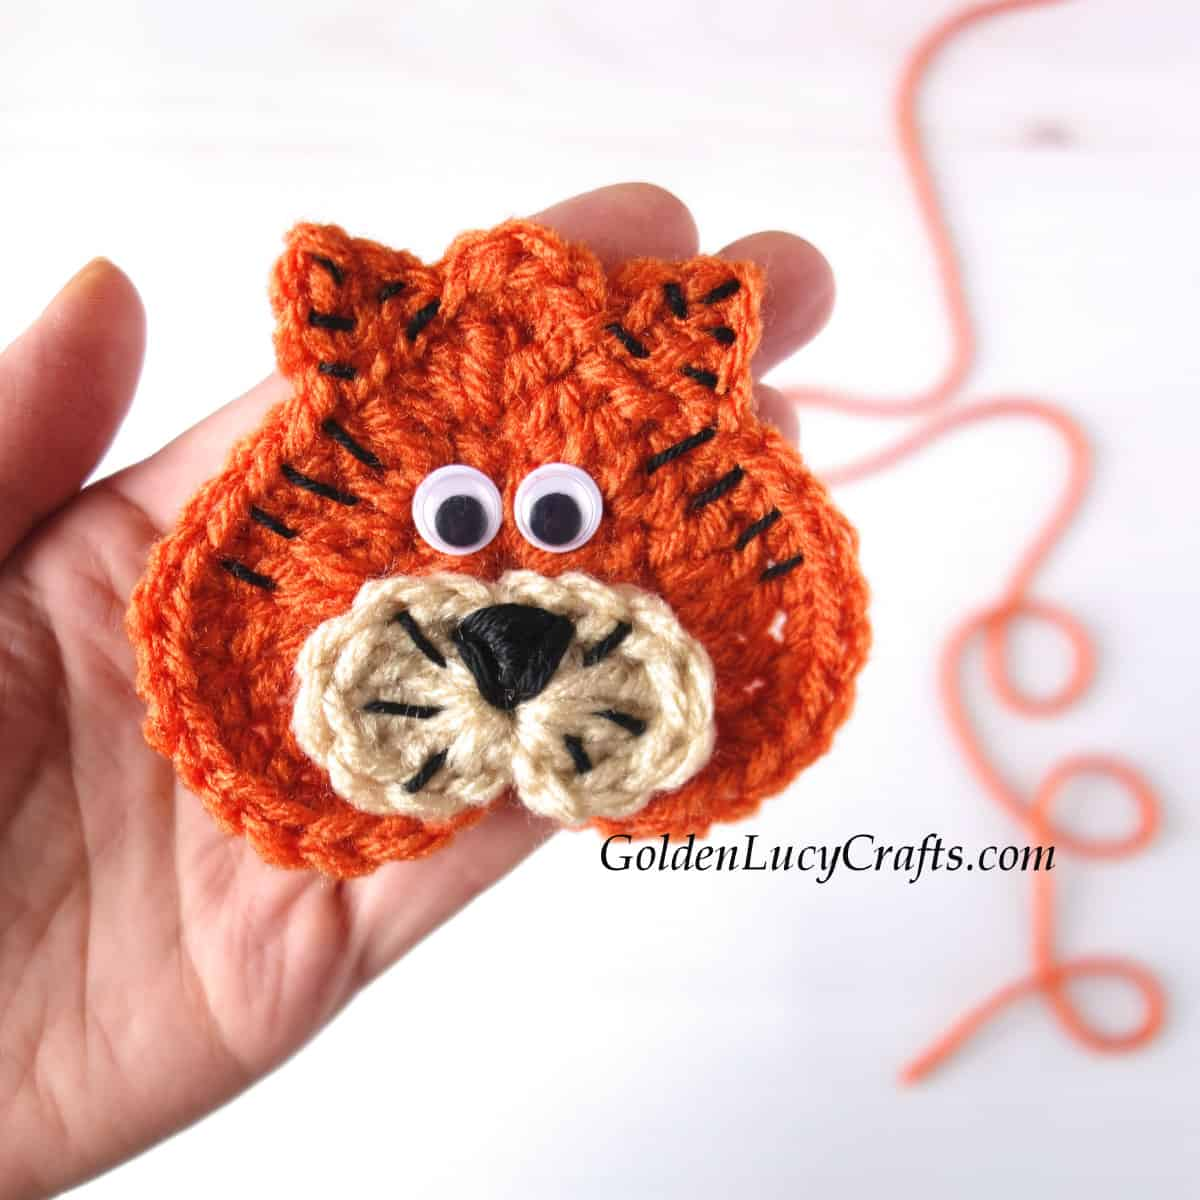 Crochet heart tiger applique in the palm of a hand.